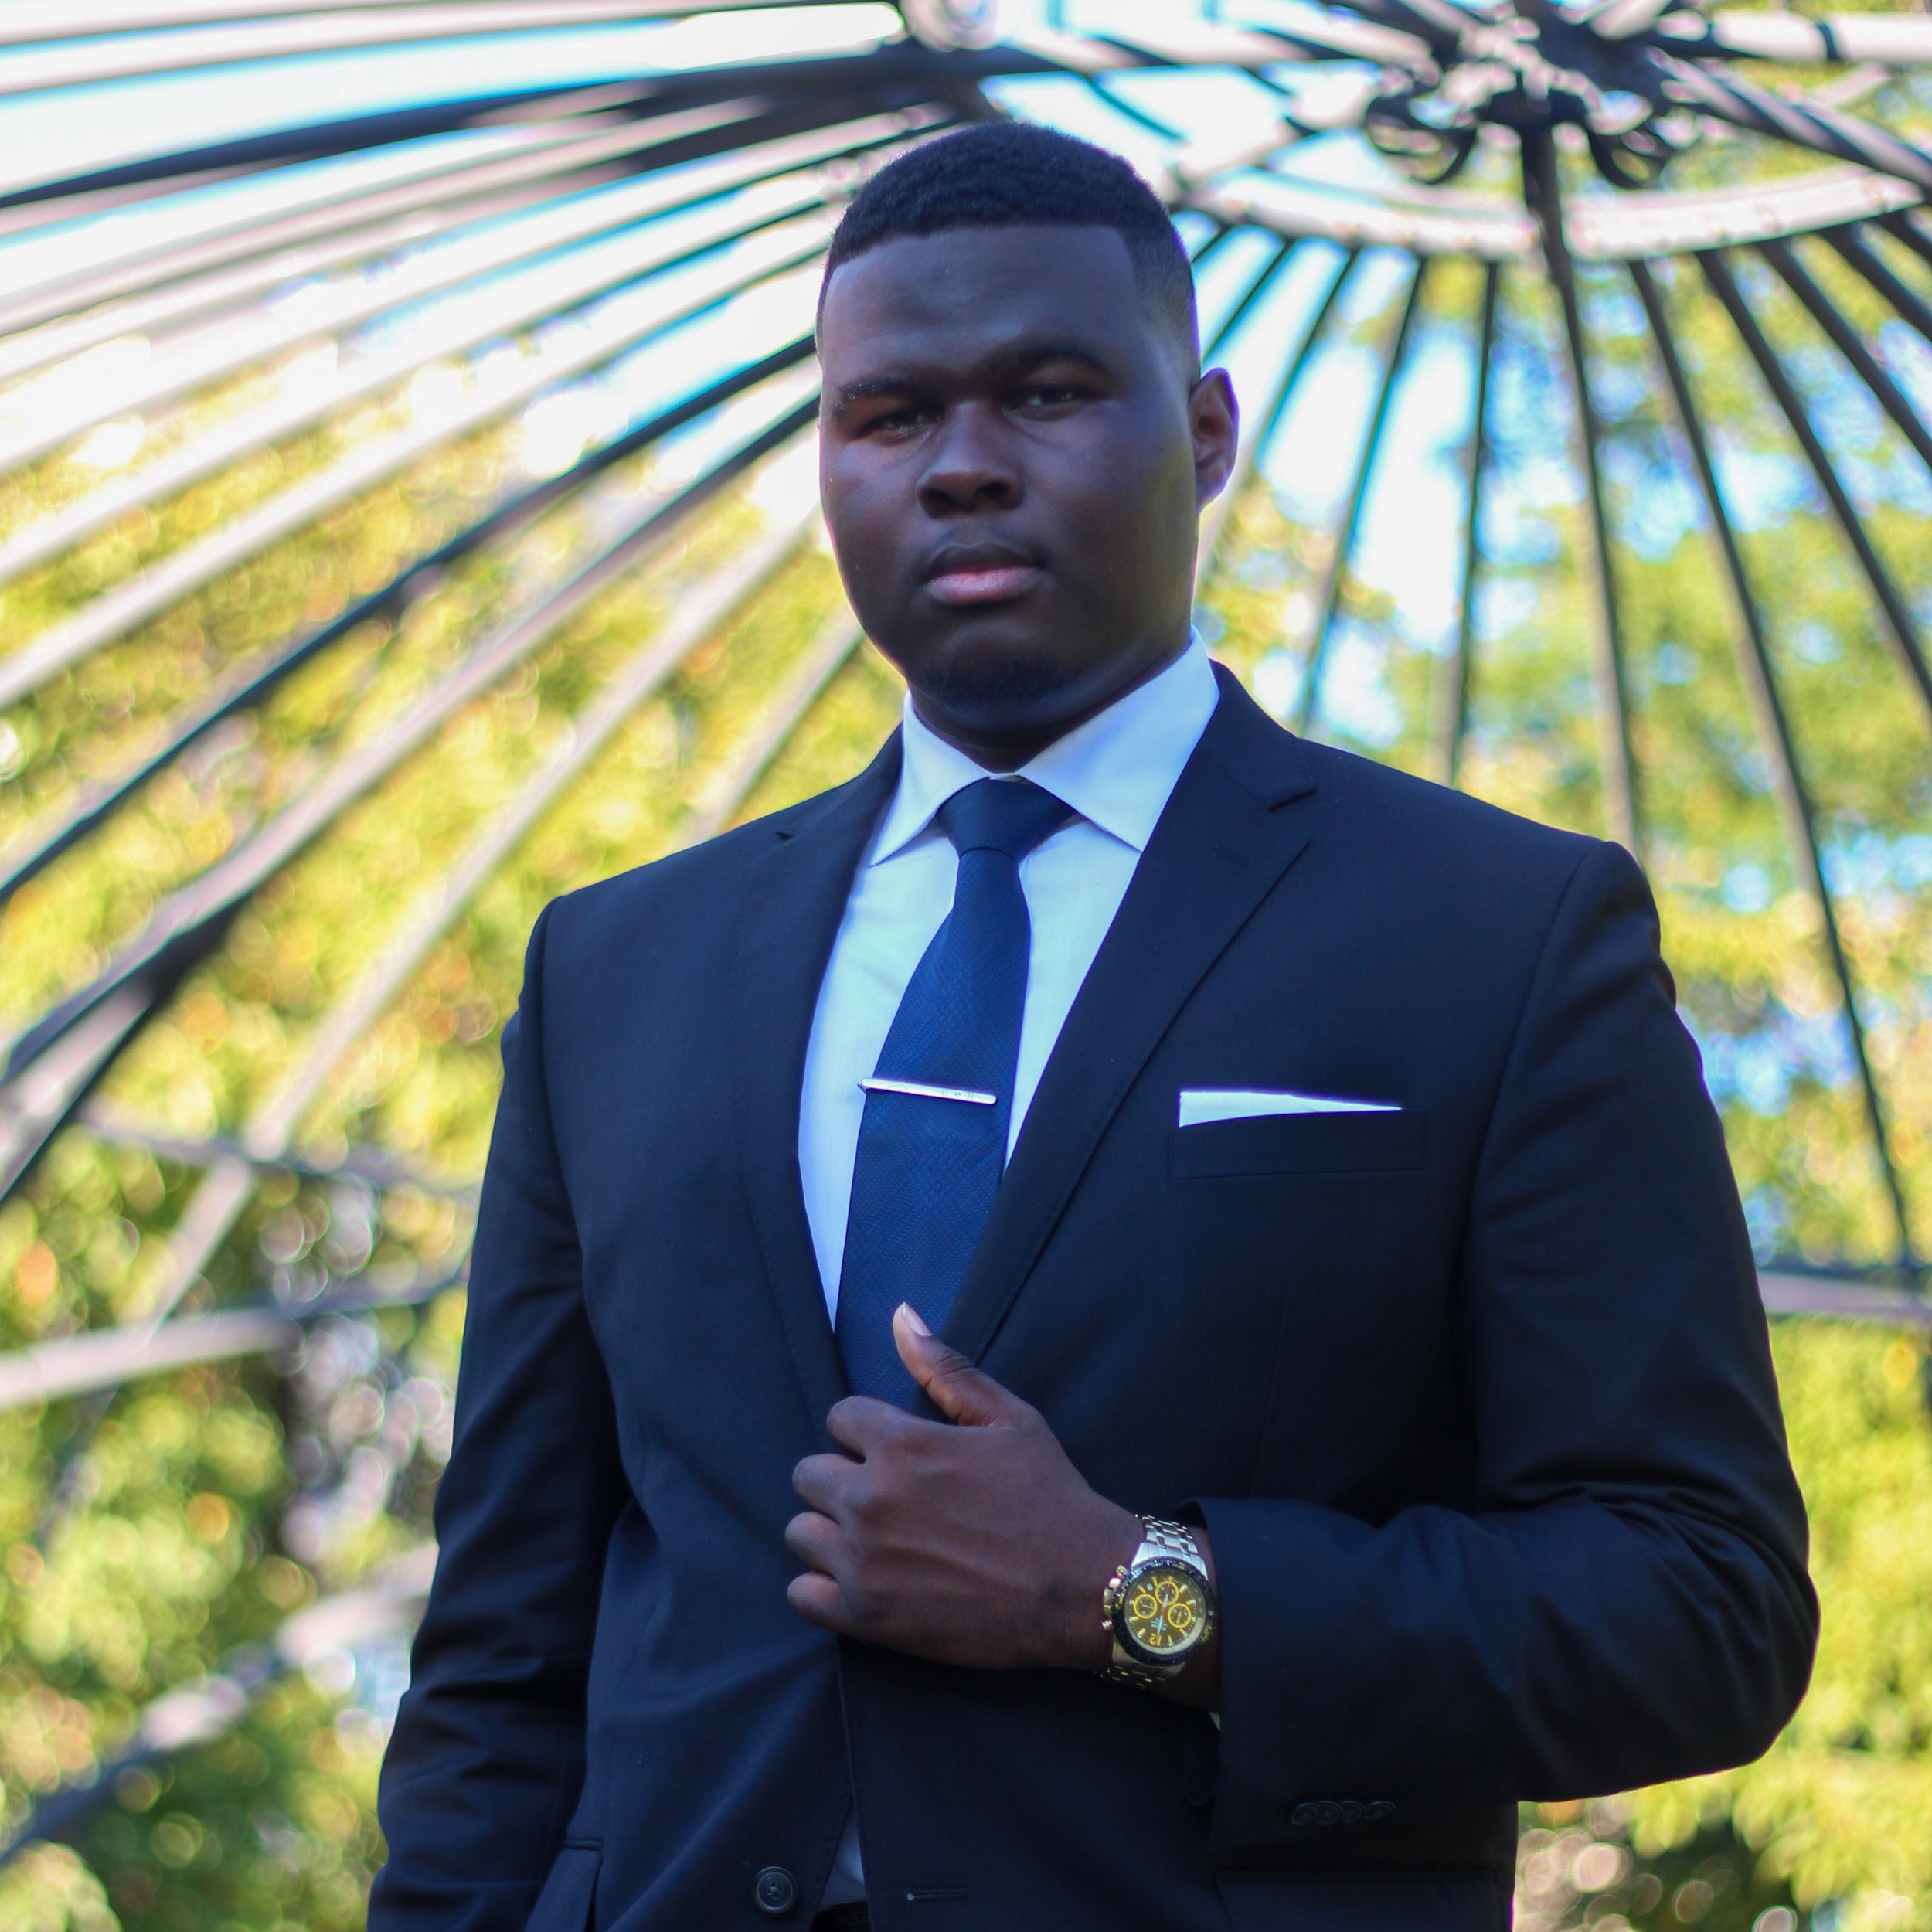 Edmund sofo - President  3rd year, majoring in economics and management science